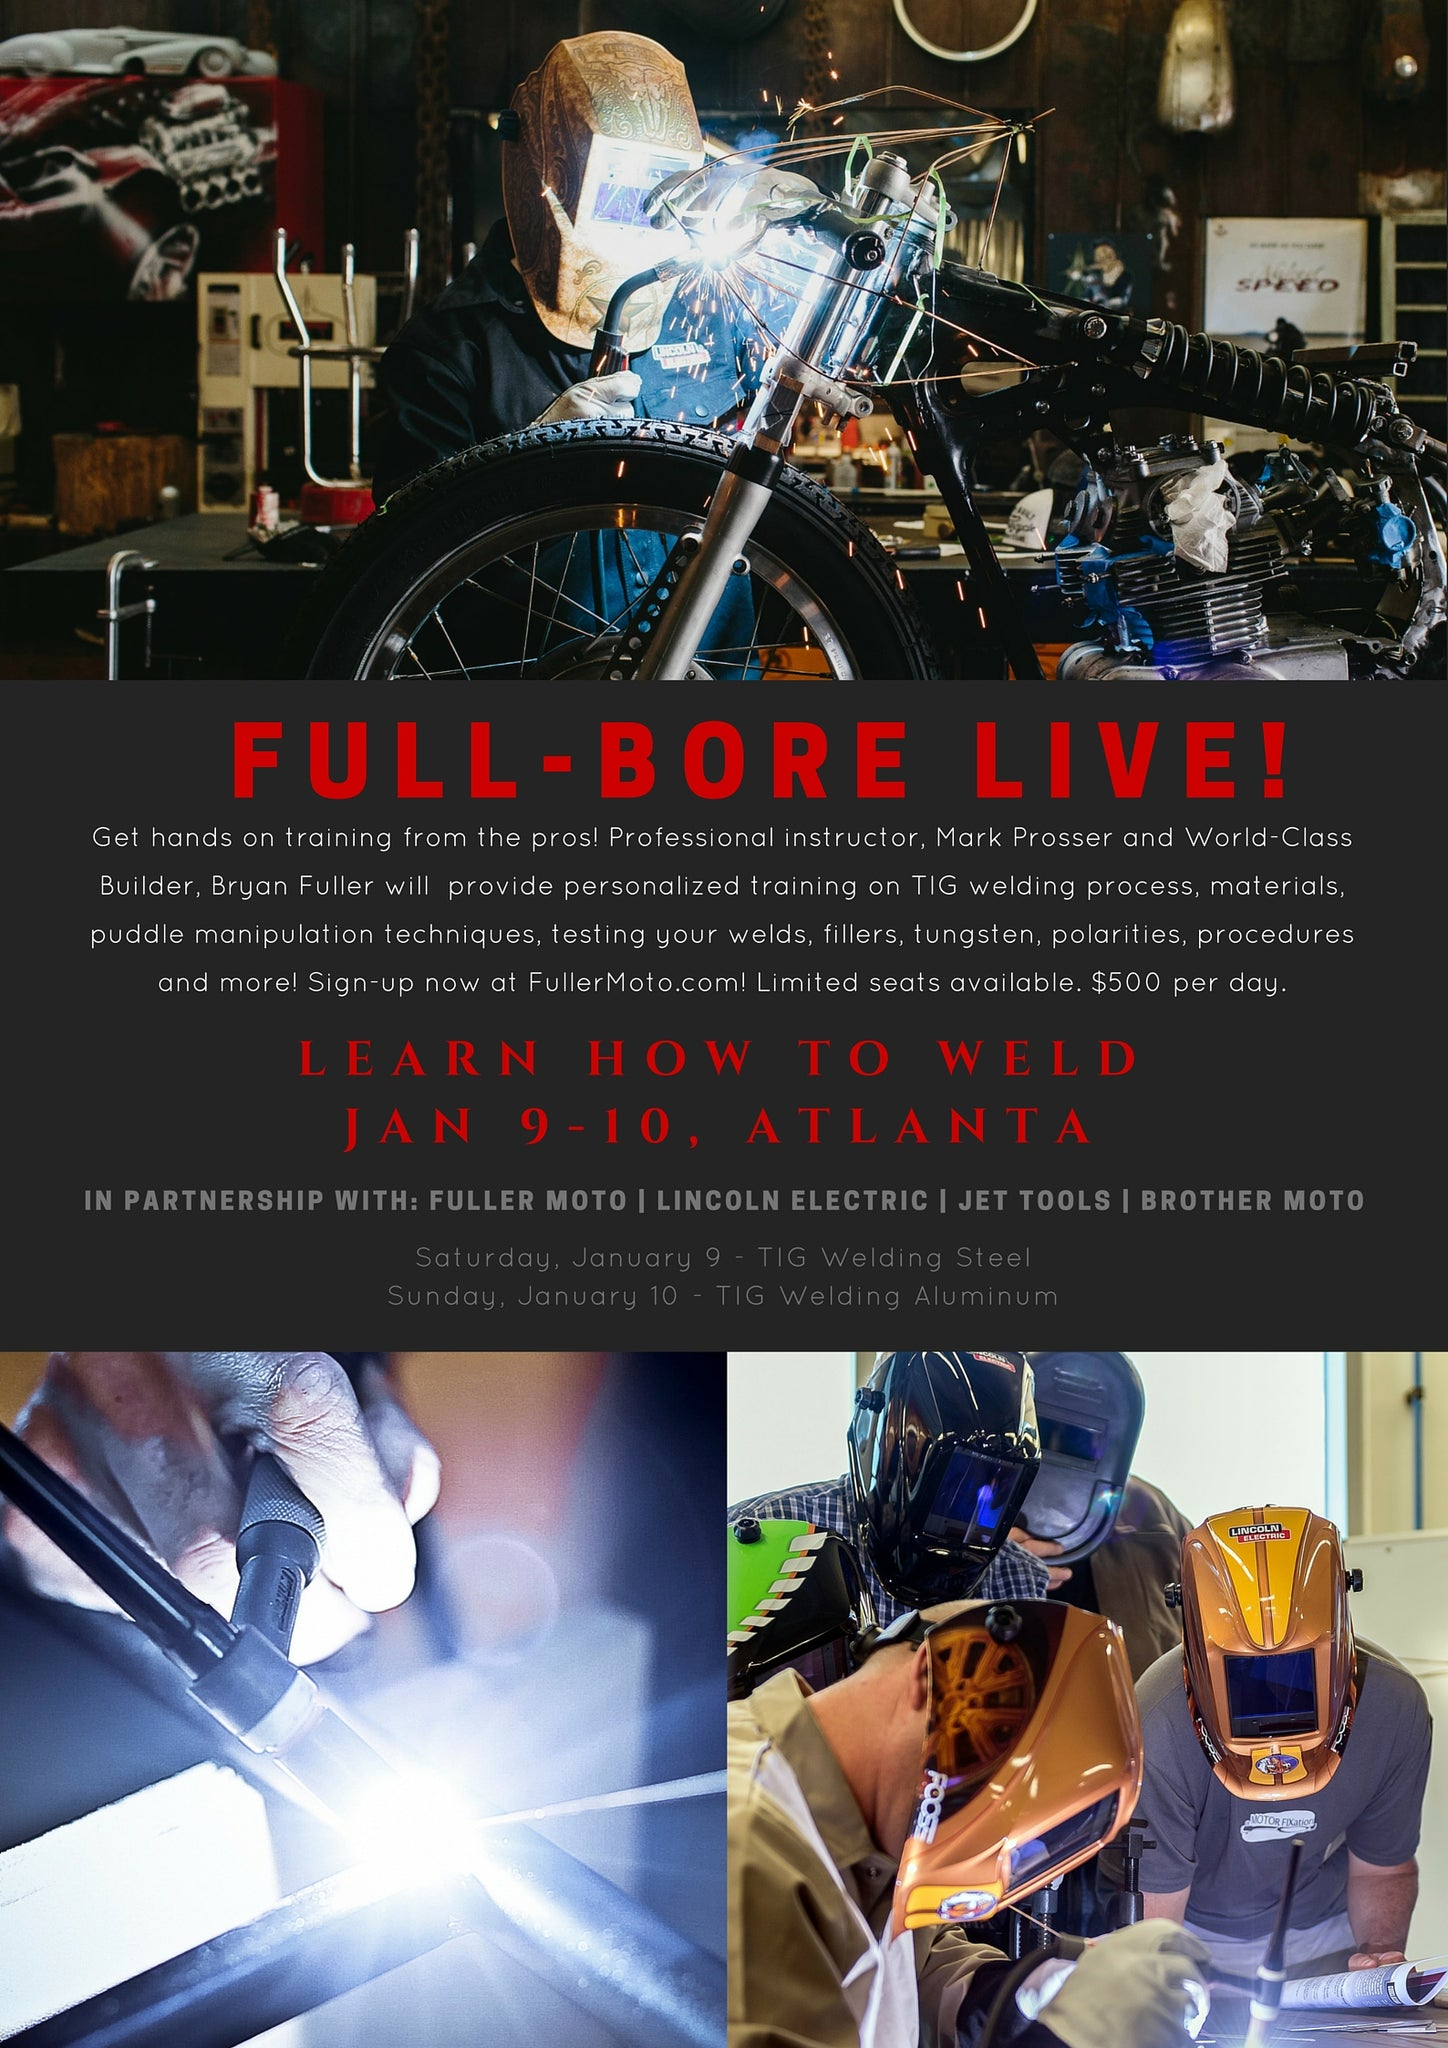 Learn to Weld | Full-Bore LIVE! with Professional Instructor, Mark Prosser and World-Class Builder, Bryan Fuller